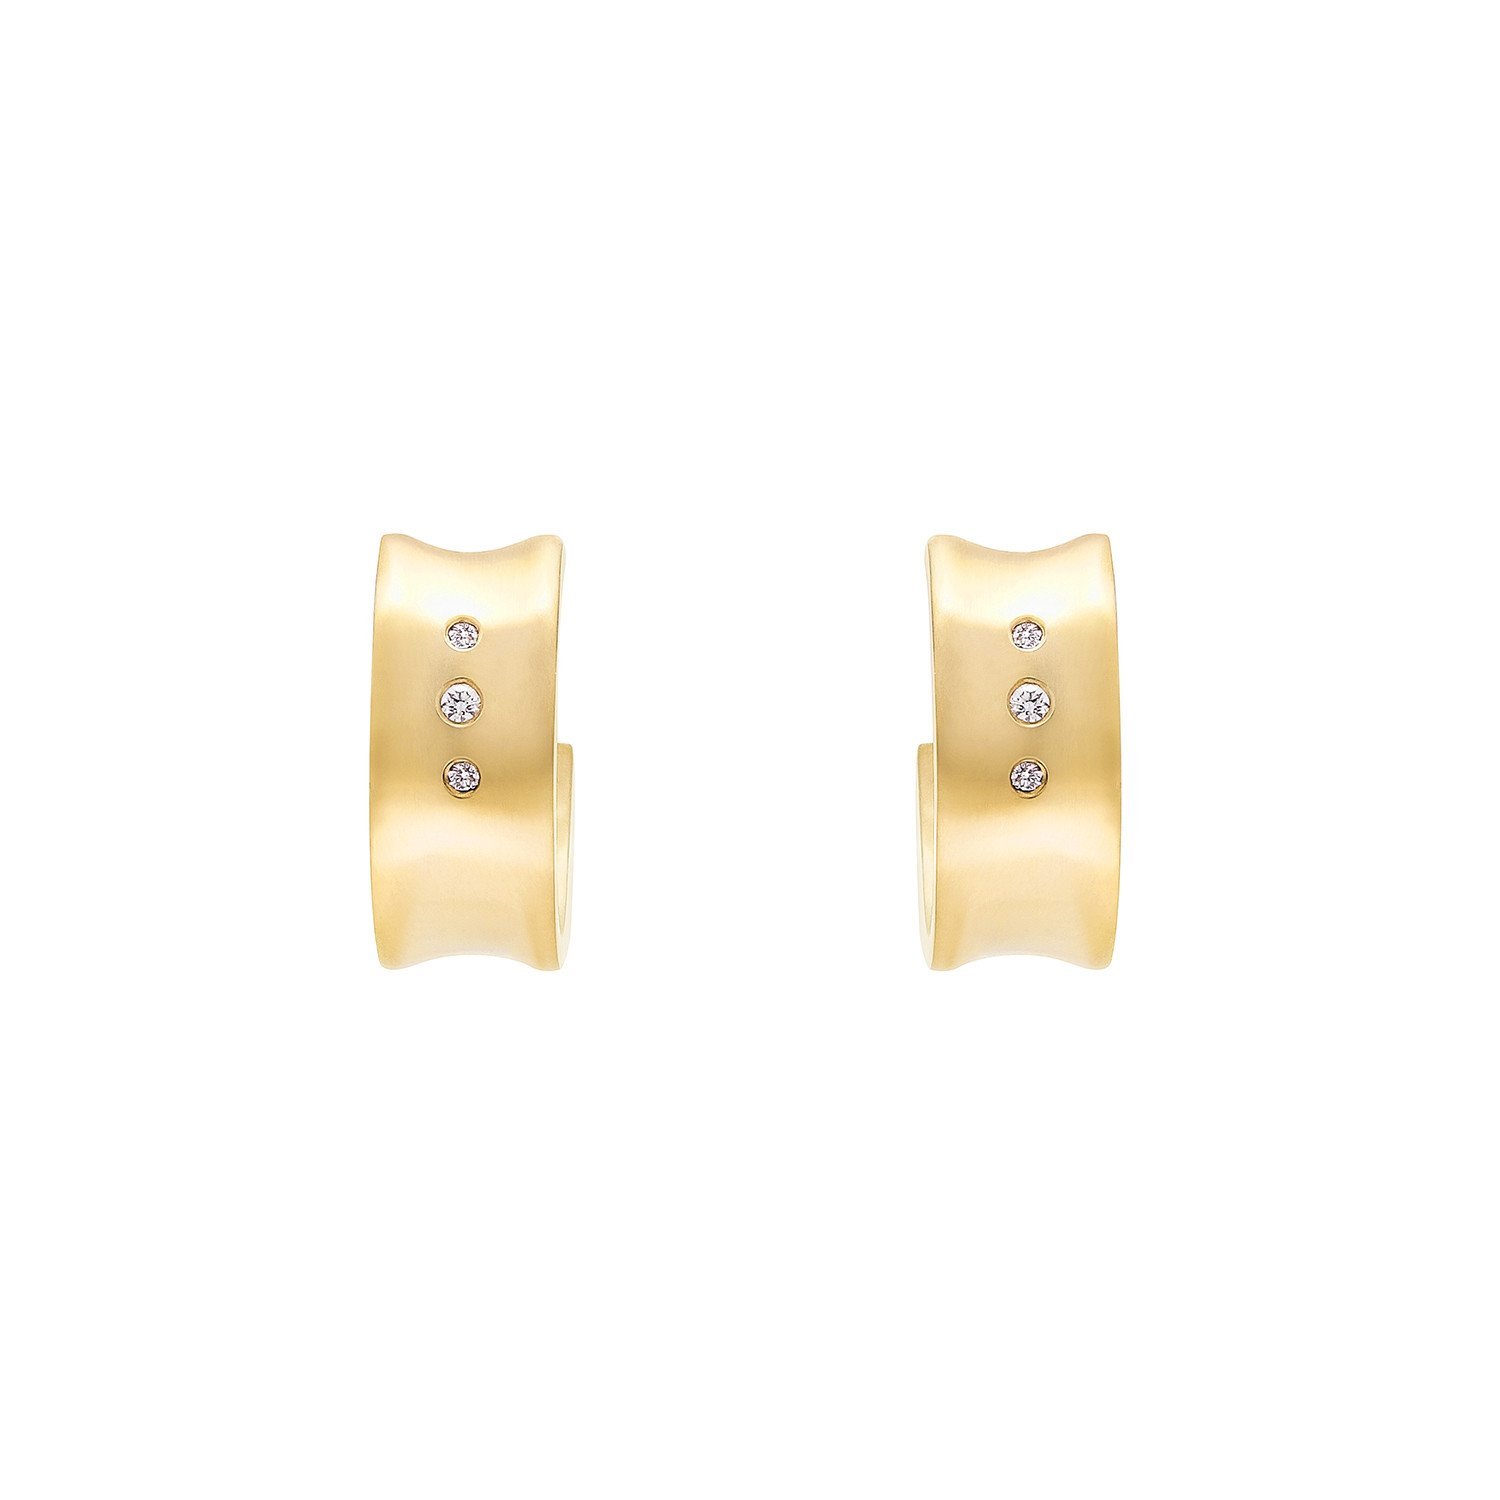 Convex Hoop Earrings - alternate